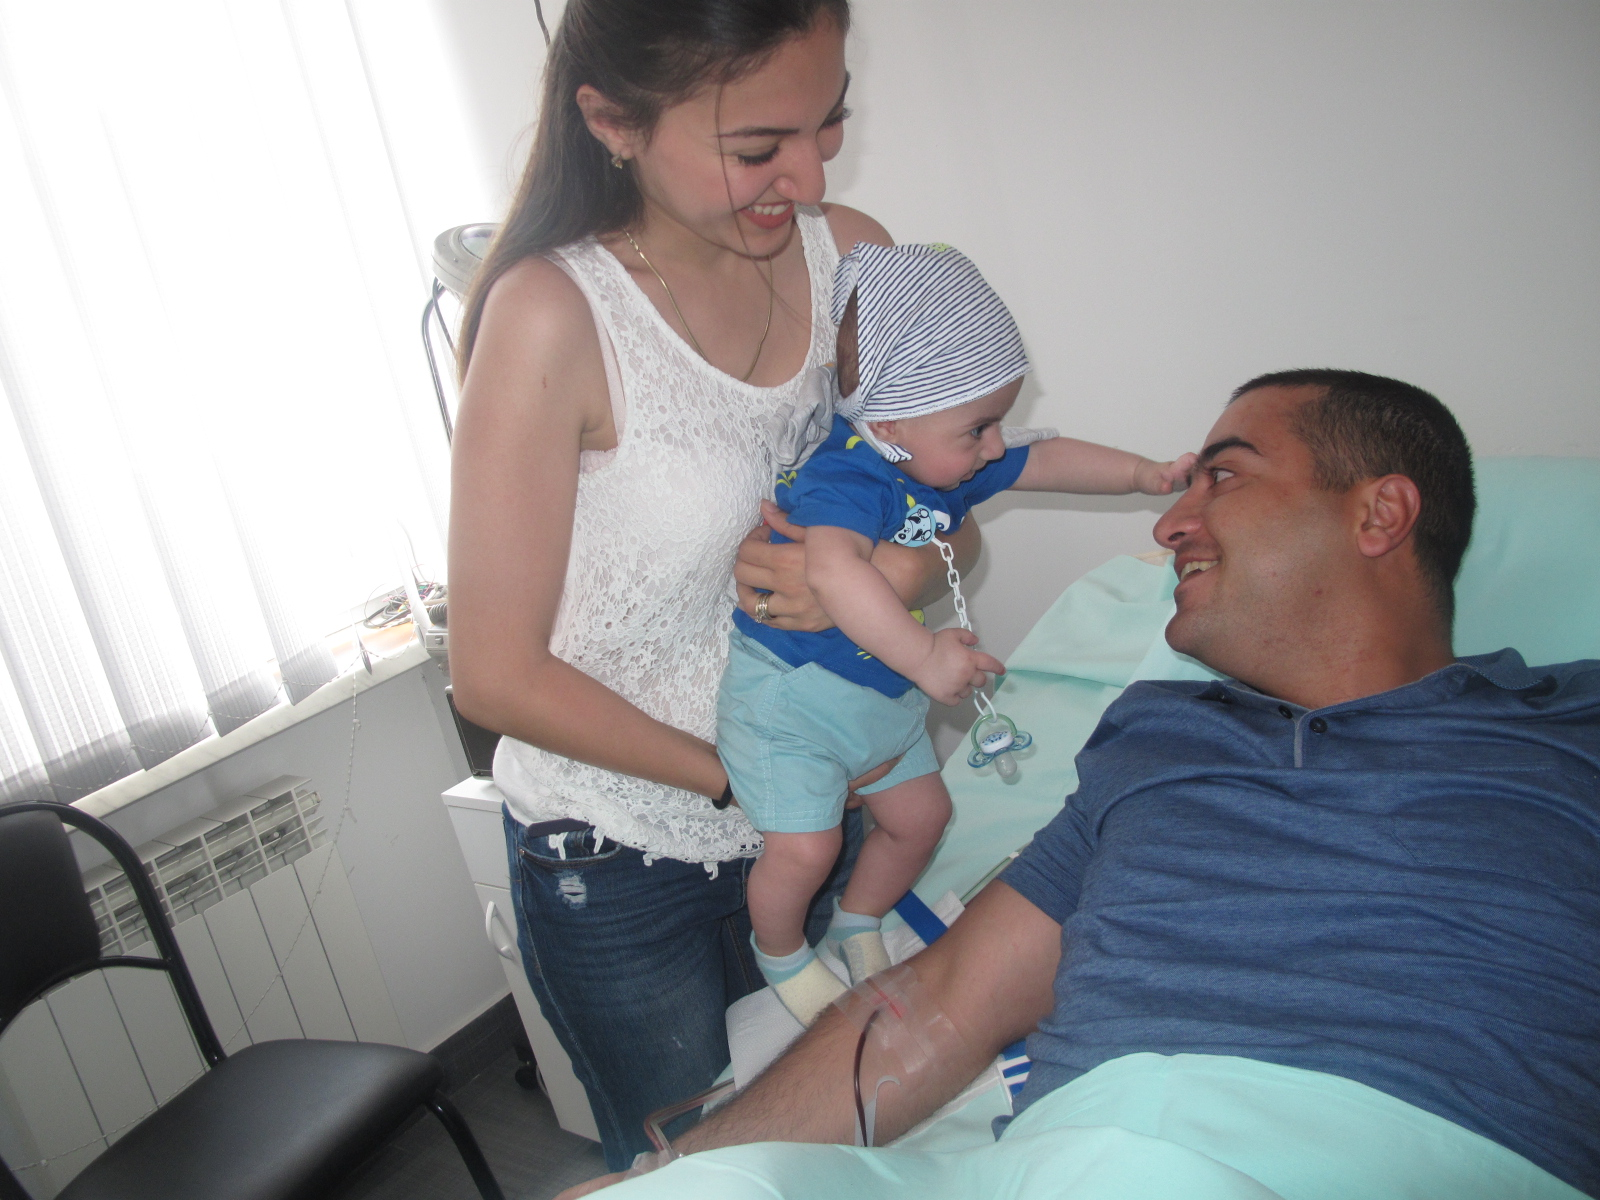 1. Sergey with the blessing of his young family